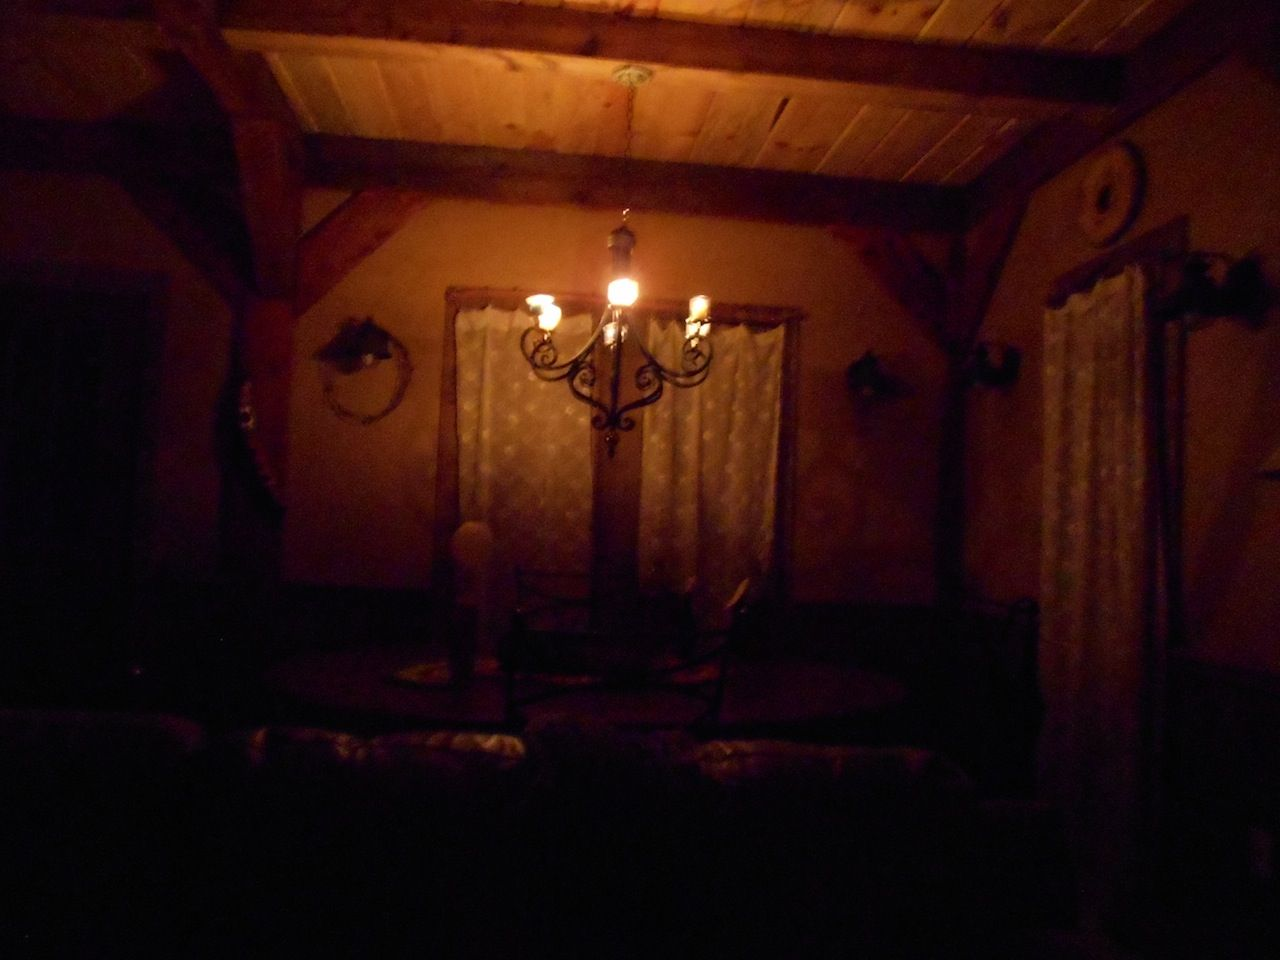 room lit by candle - Google Search | Room lights